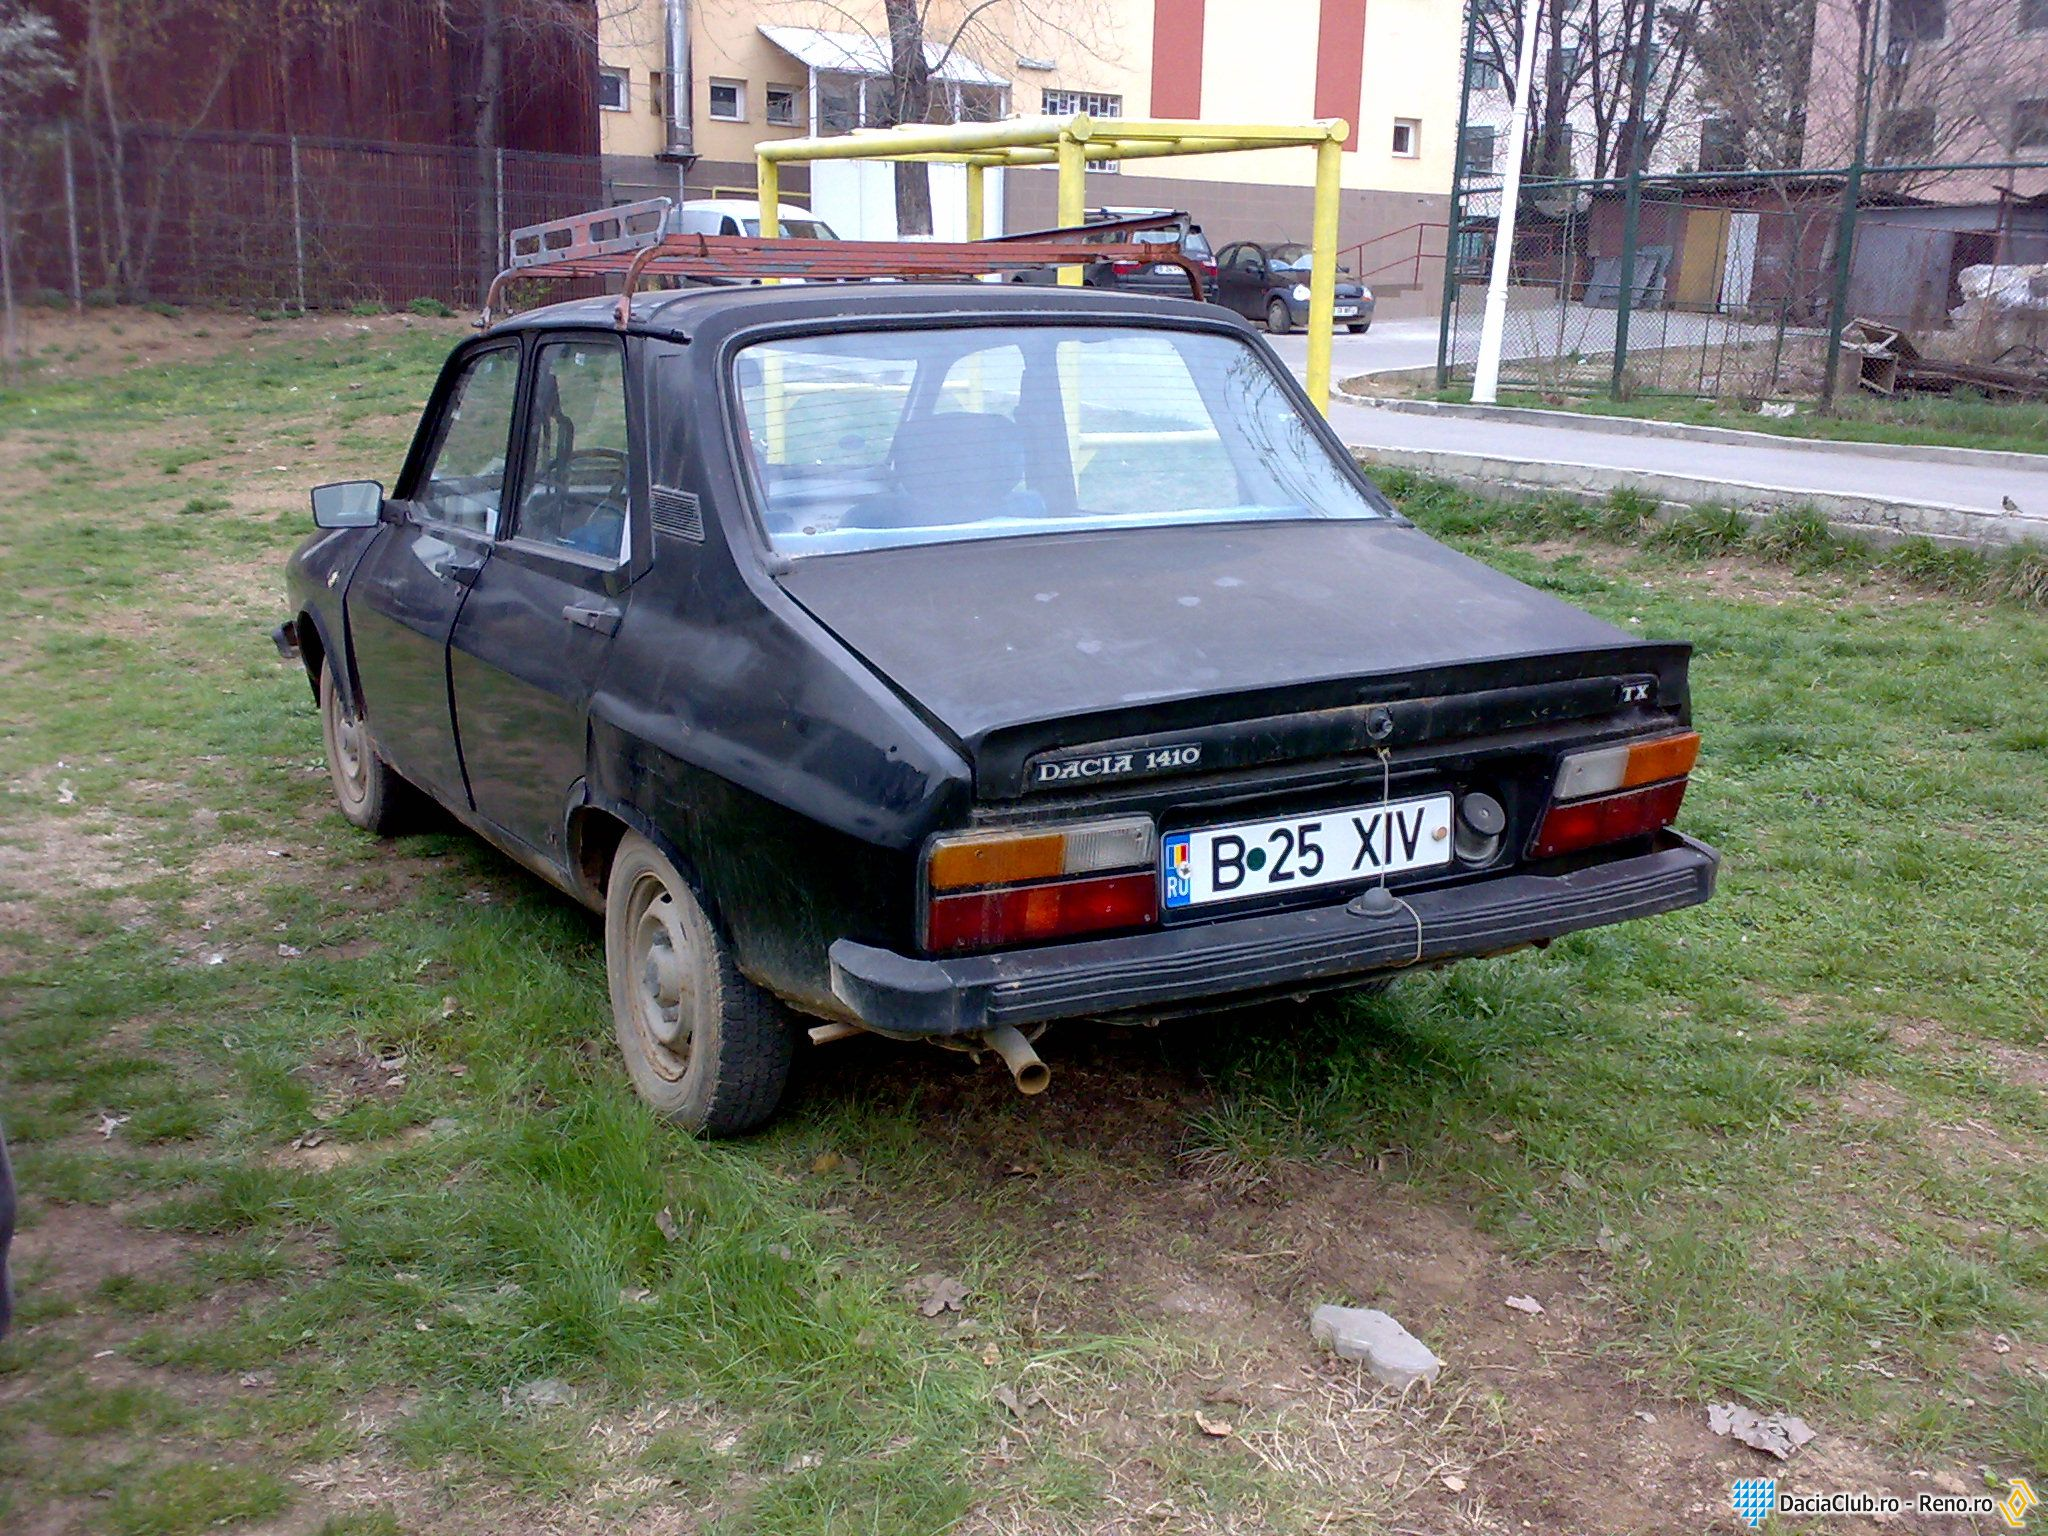 Pictures of dacia 1410 1992